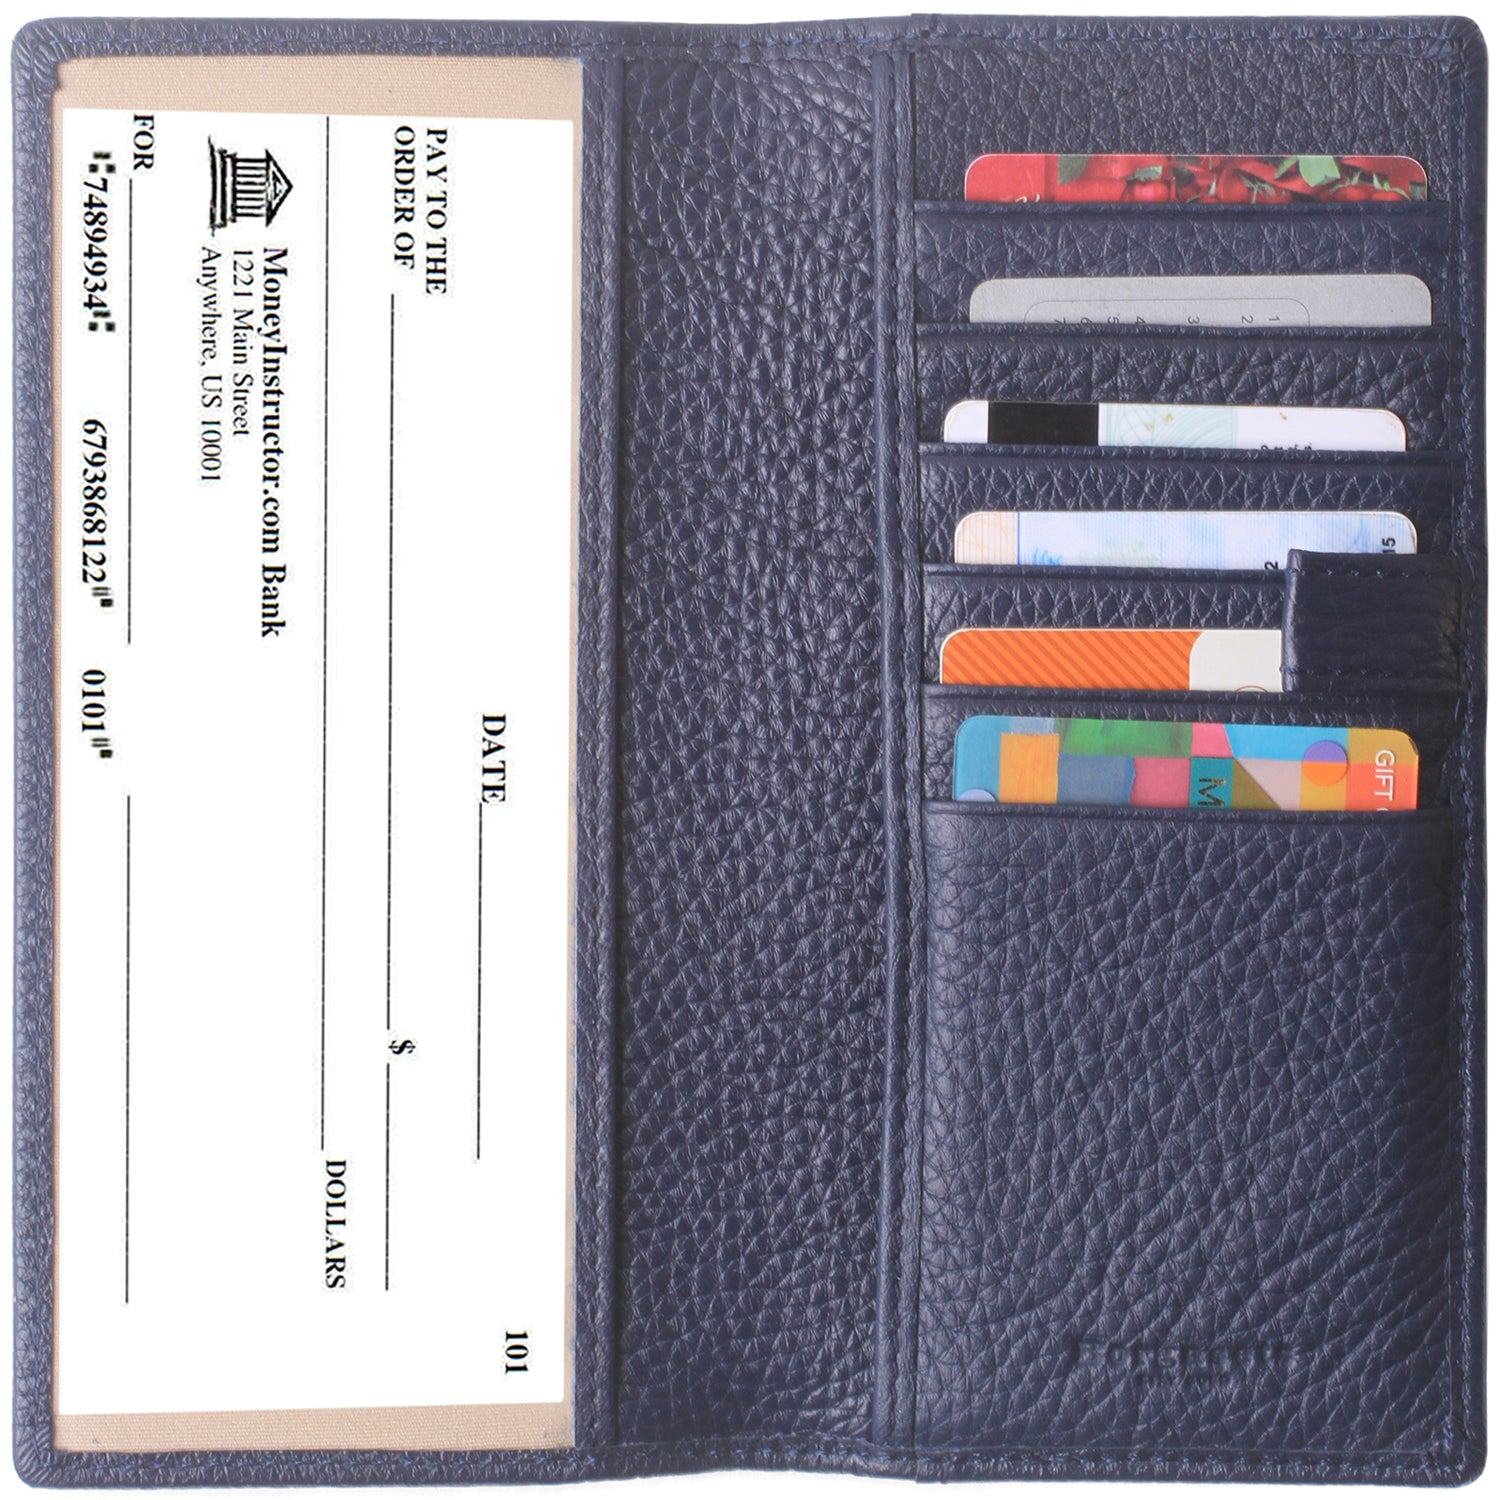 Leather Checkbook Cover For Men Women Checkbook Covers with Card Holder Wallet BG2255 Limited Blue - Borgasets